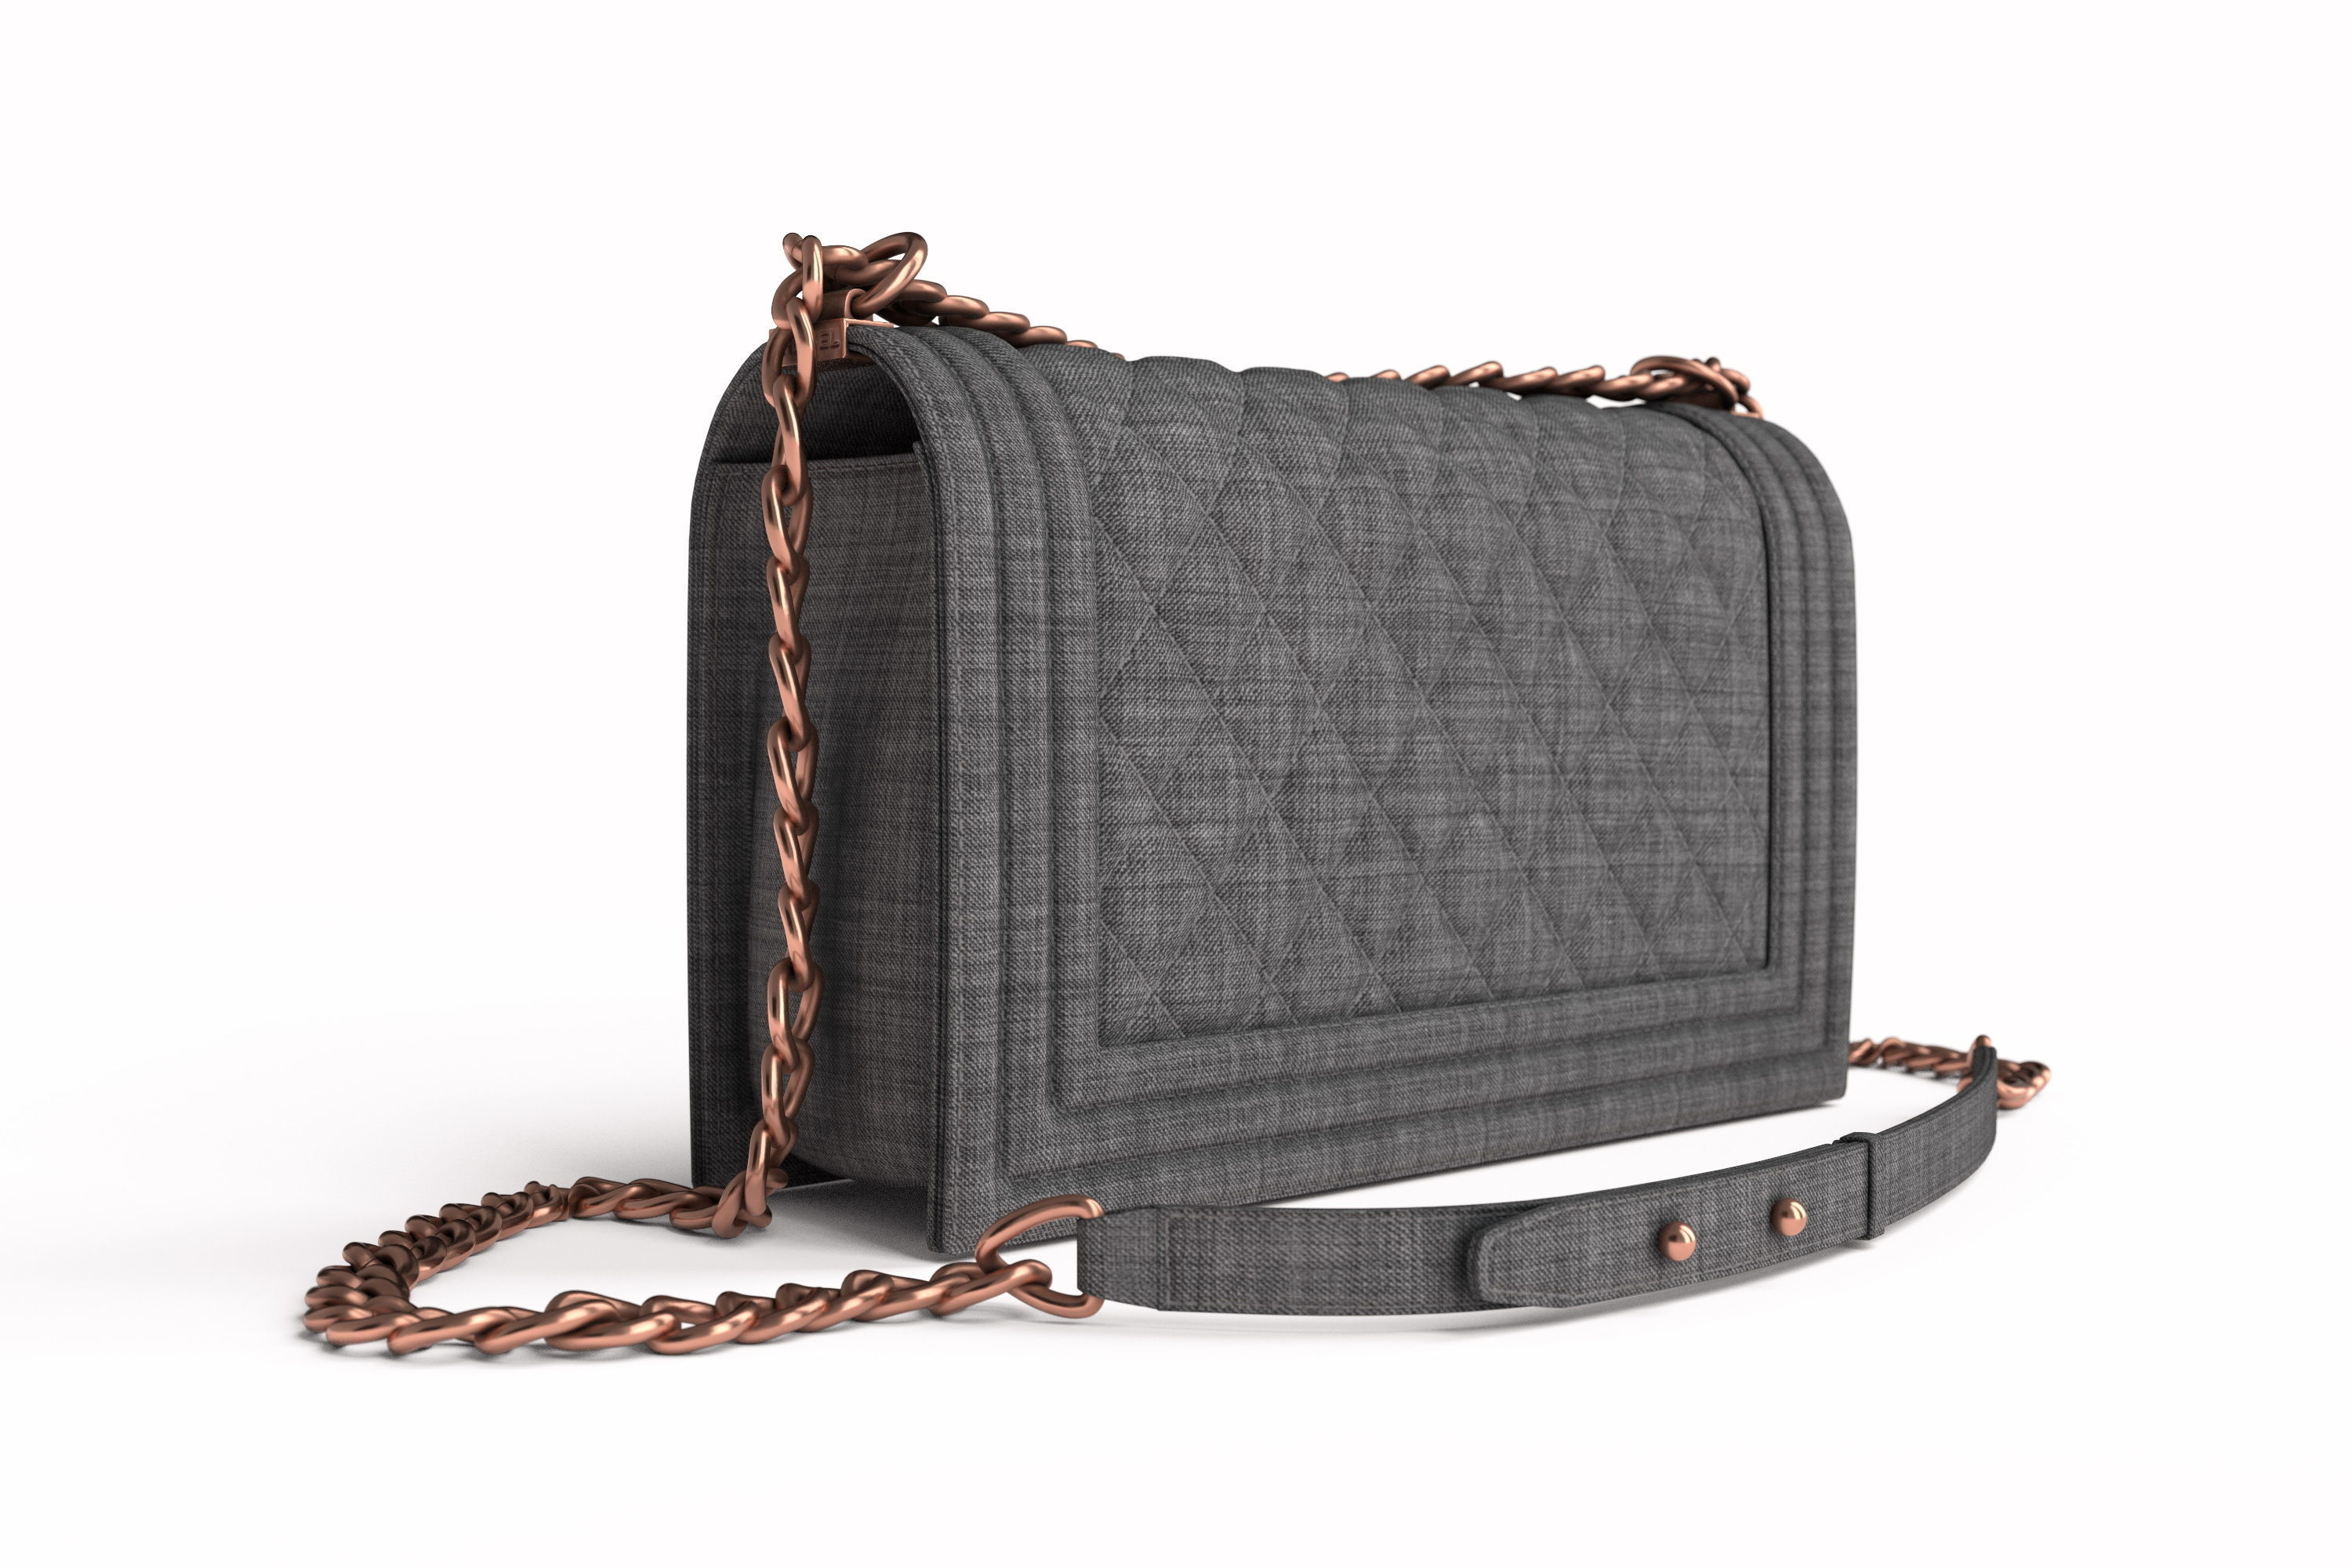 57921d1a1b98 3D model Luxury Chanel Purse | CGTrader